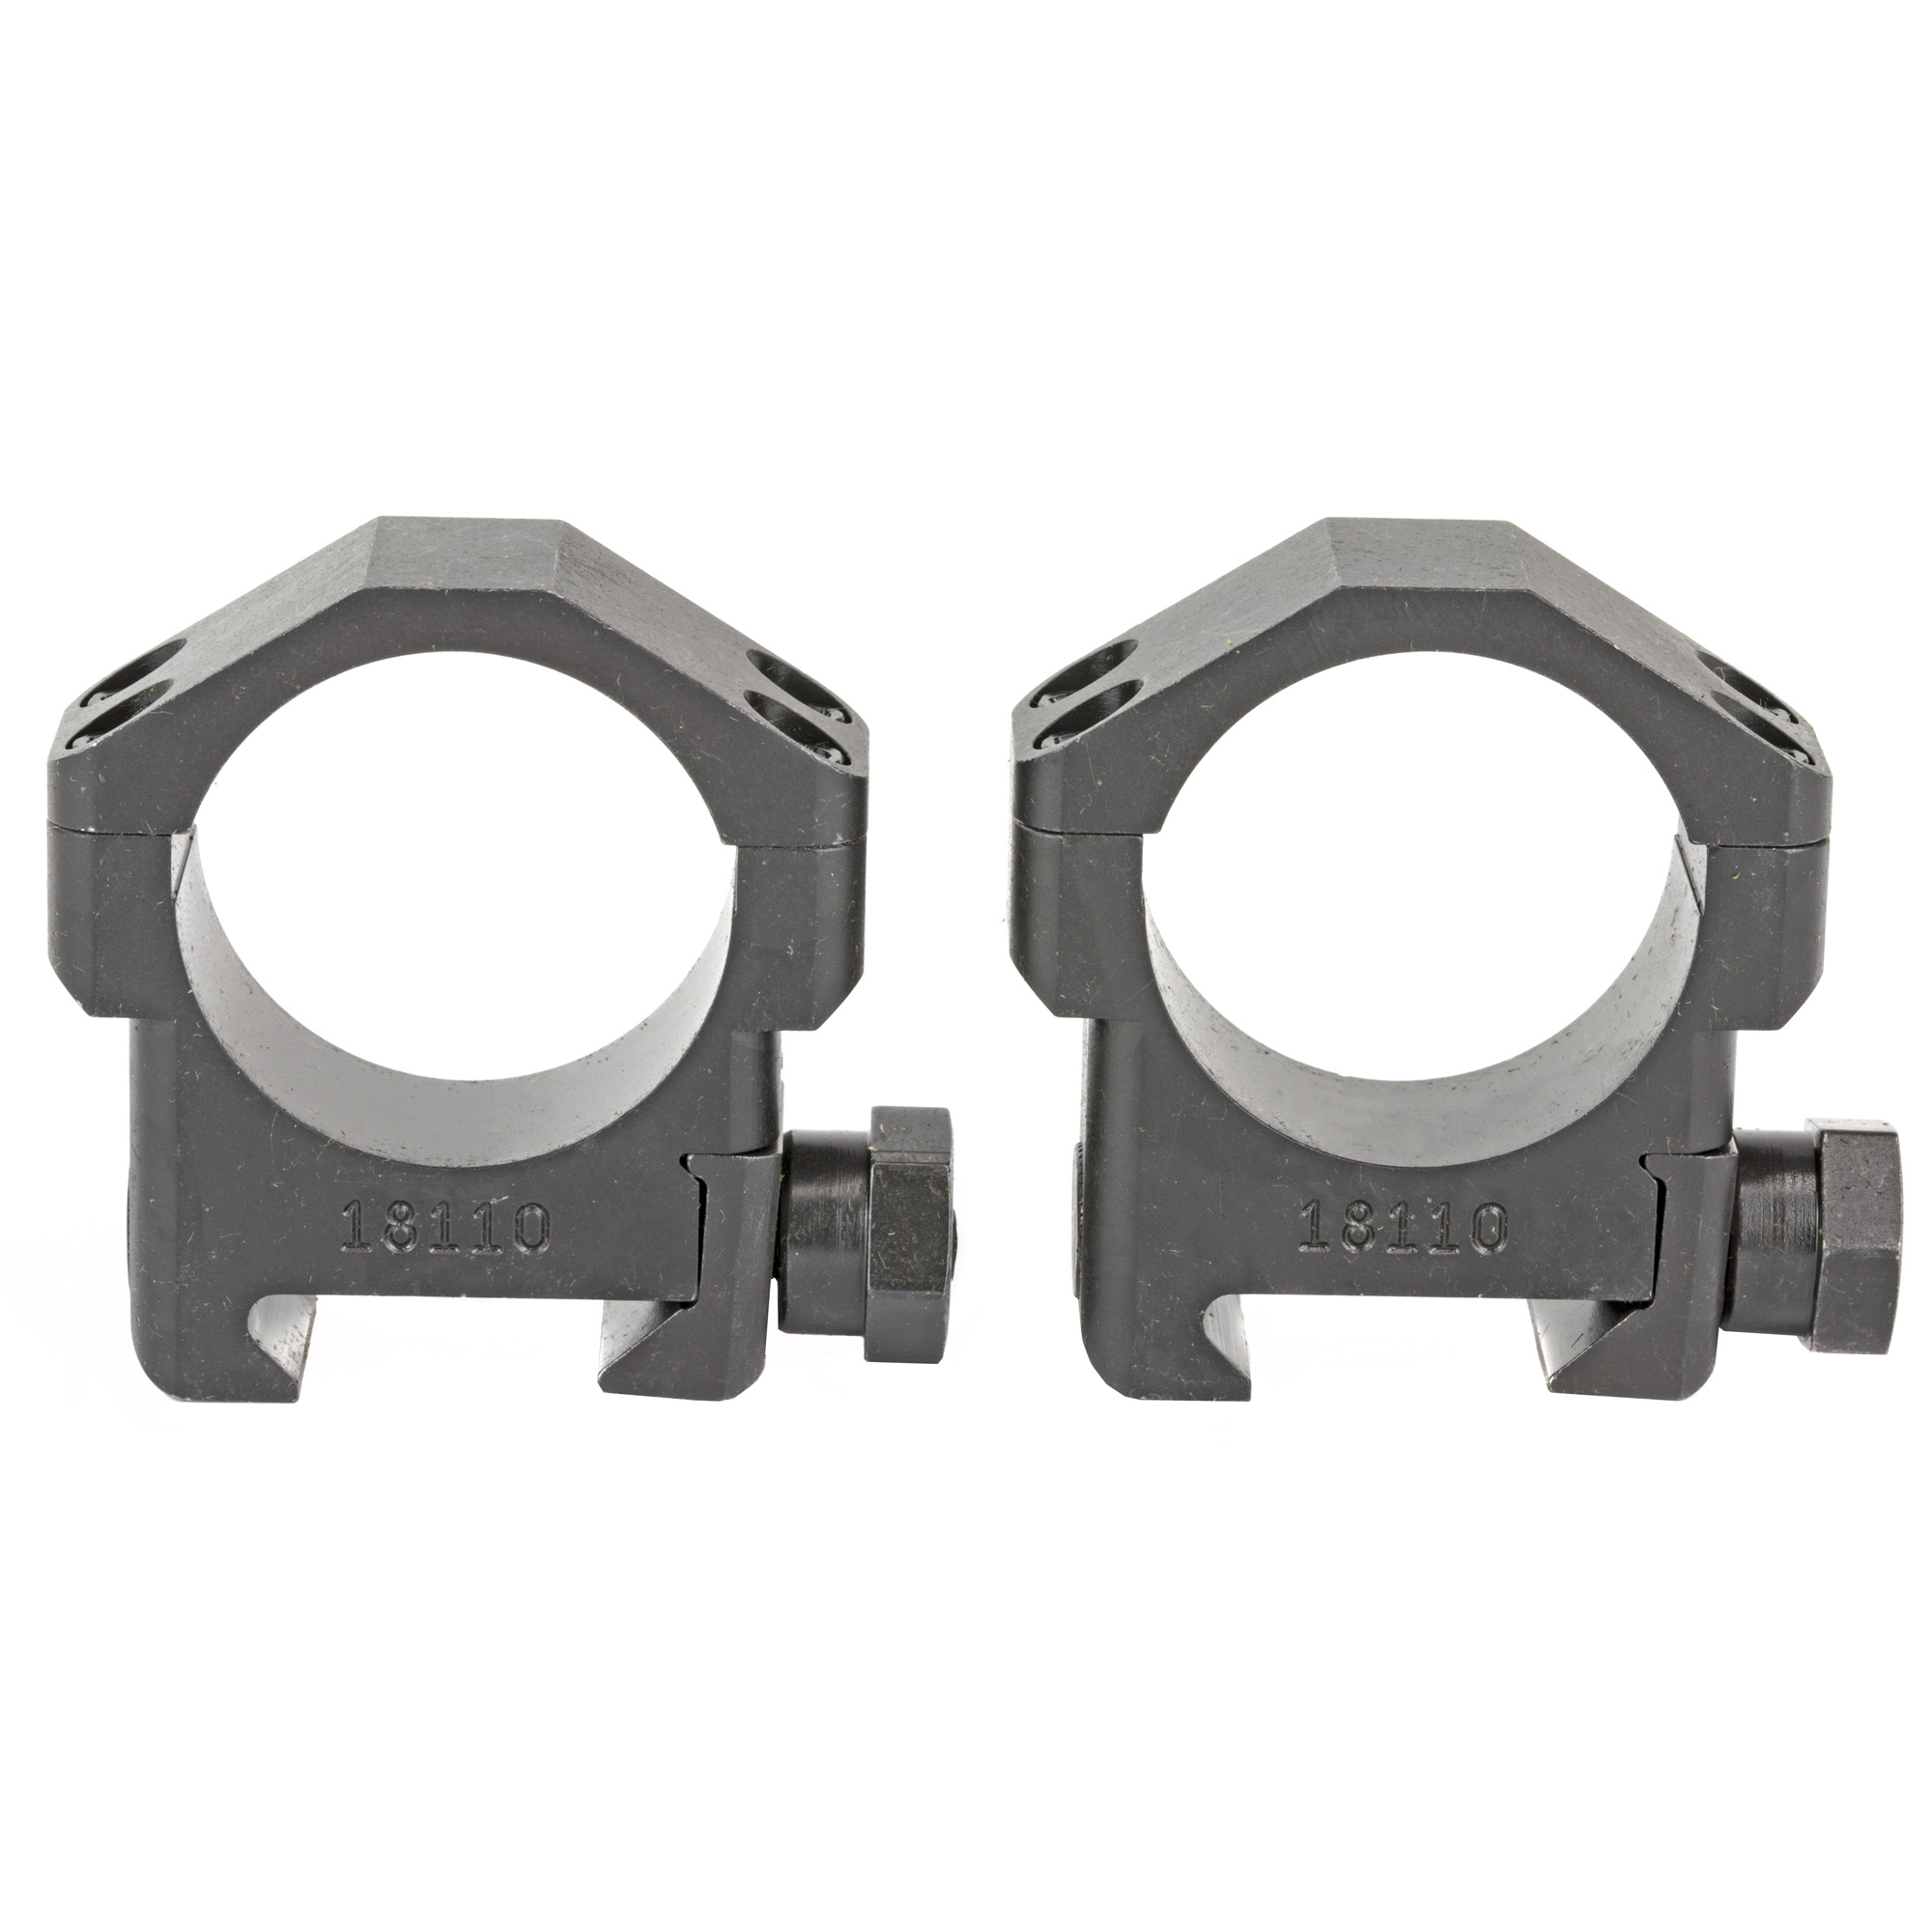 The Badger Ordnance 30mm Medium Scope Ring are optimized for use with most 30mm optics in current use and accommodate precision rifles with medium and heavy contour barrel profiles. They are machined from Ordnance Grade Steel and Black Oxide finished.